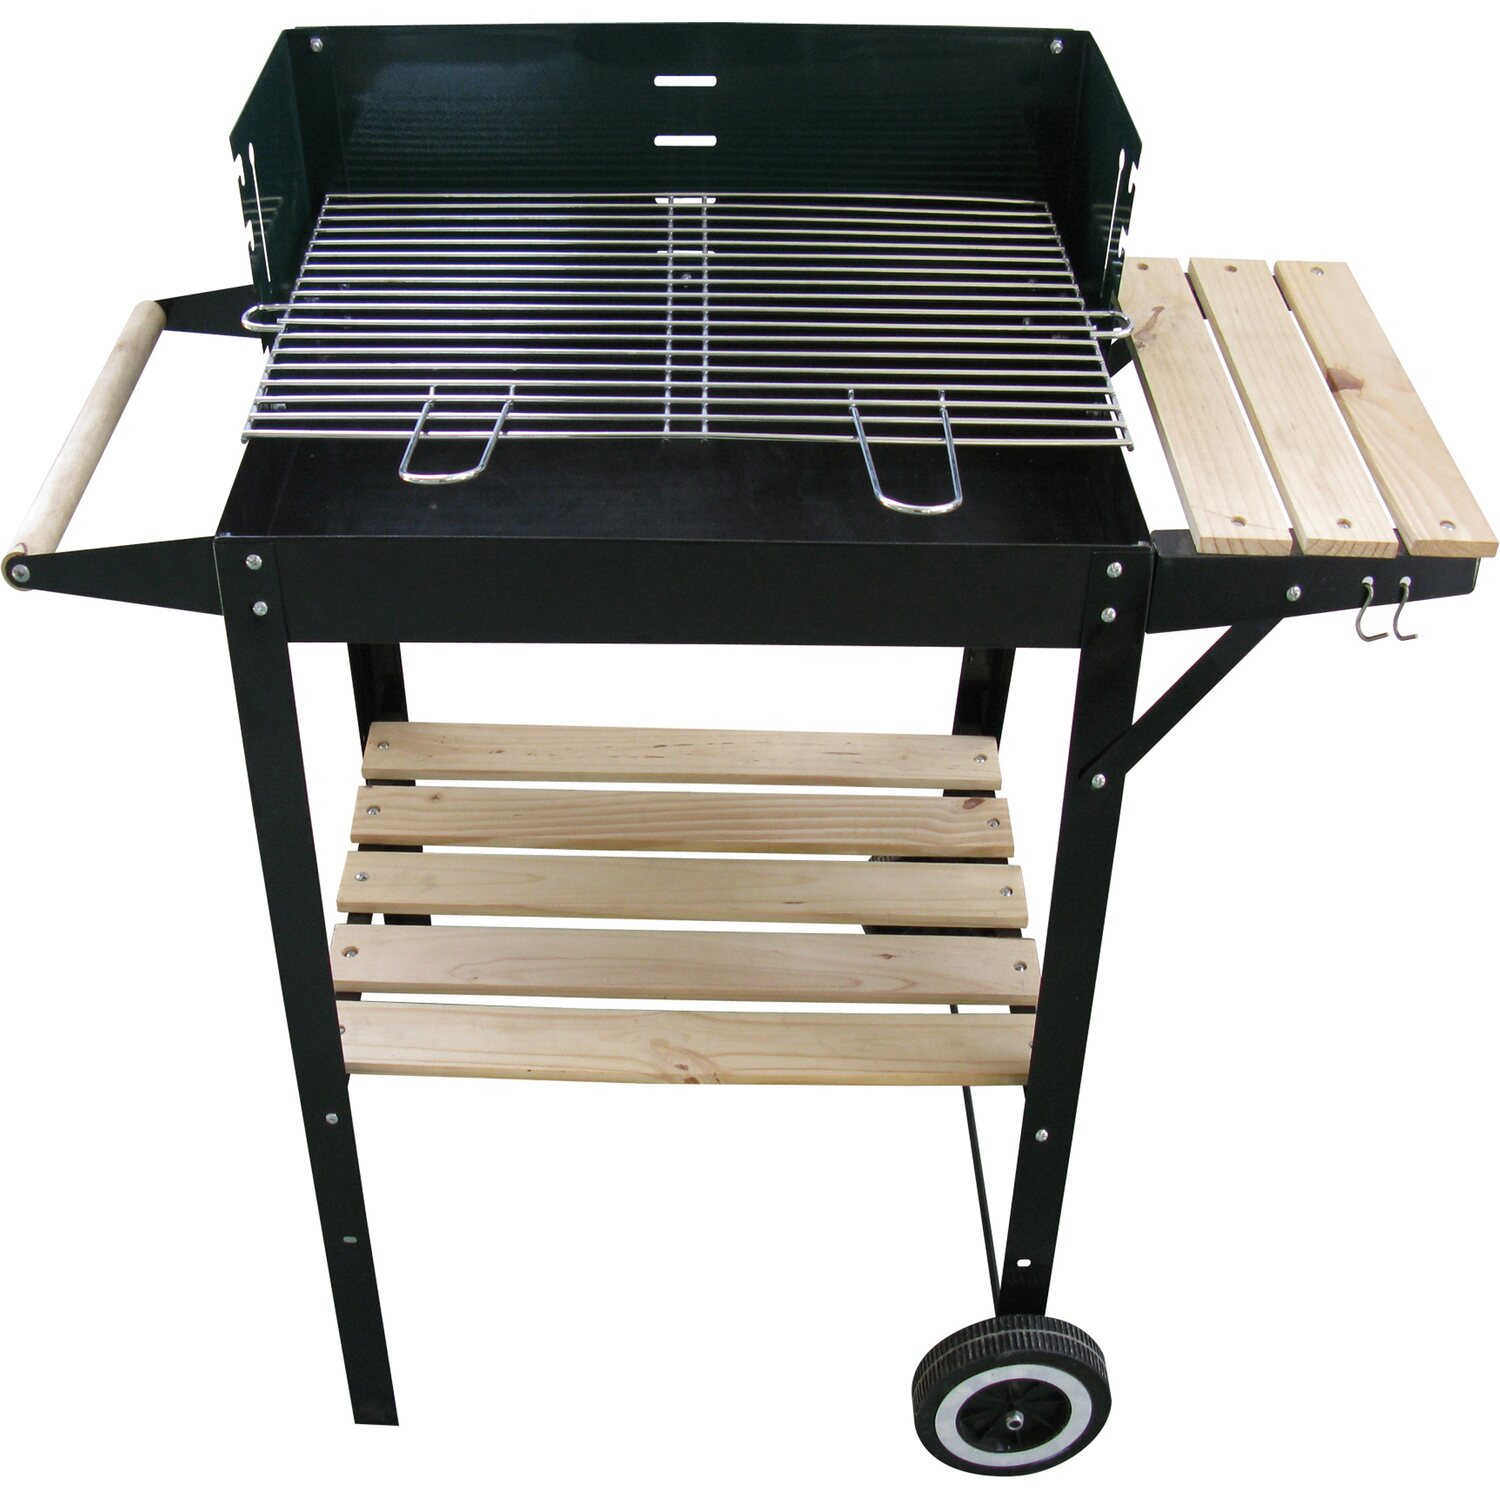 Barbecue cmi con carrello acquista da obi for Obi barbecue